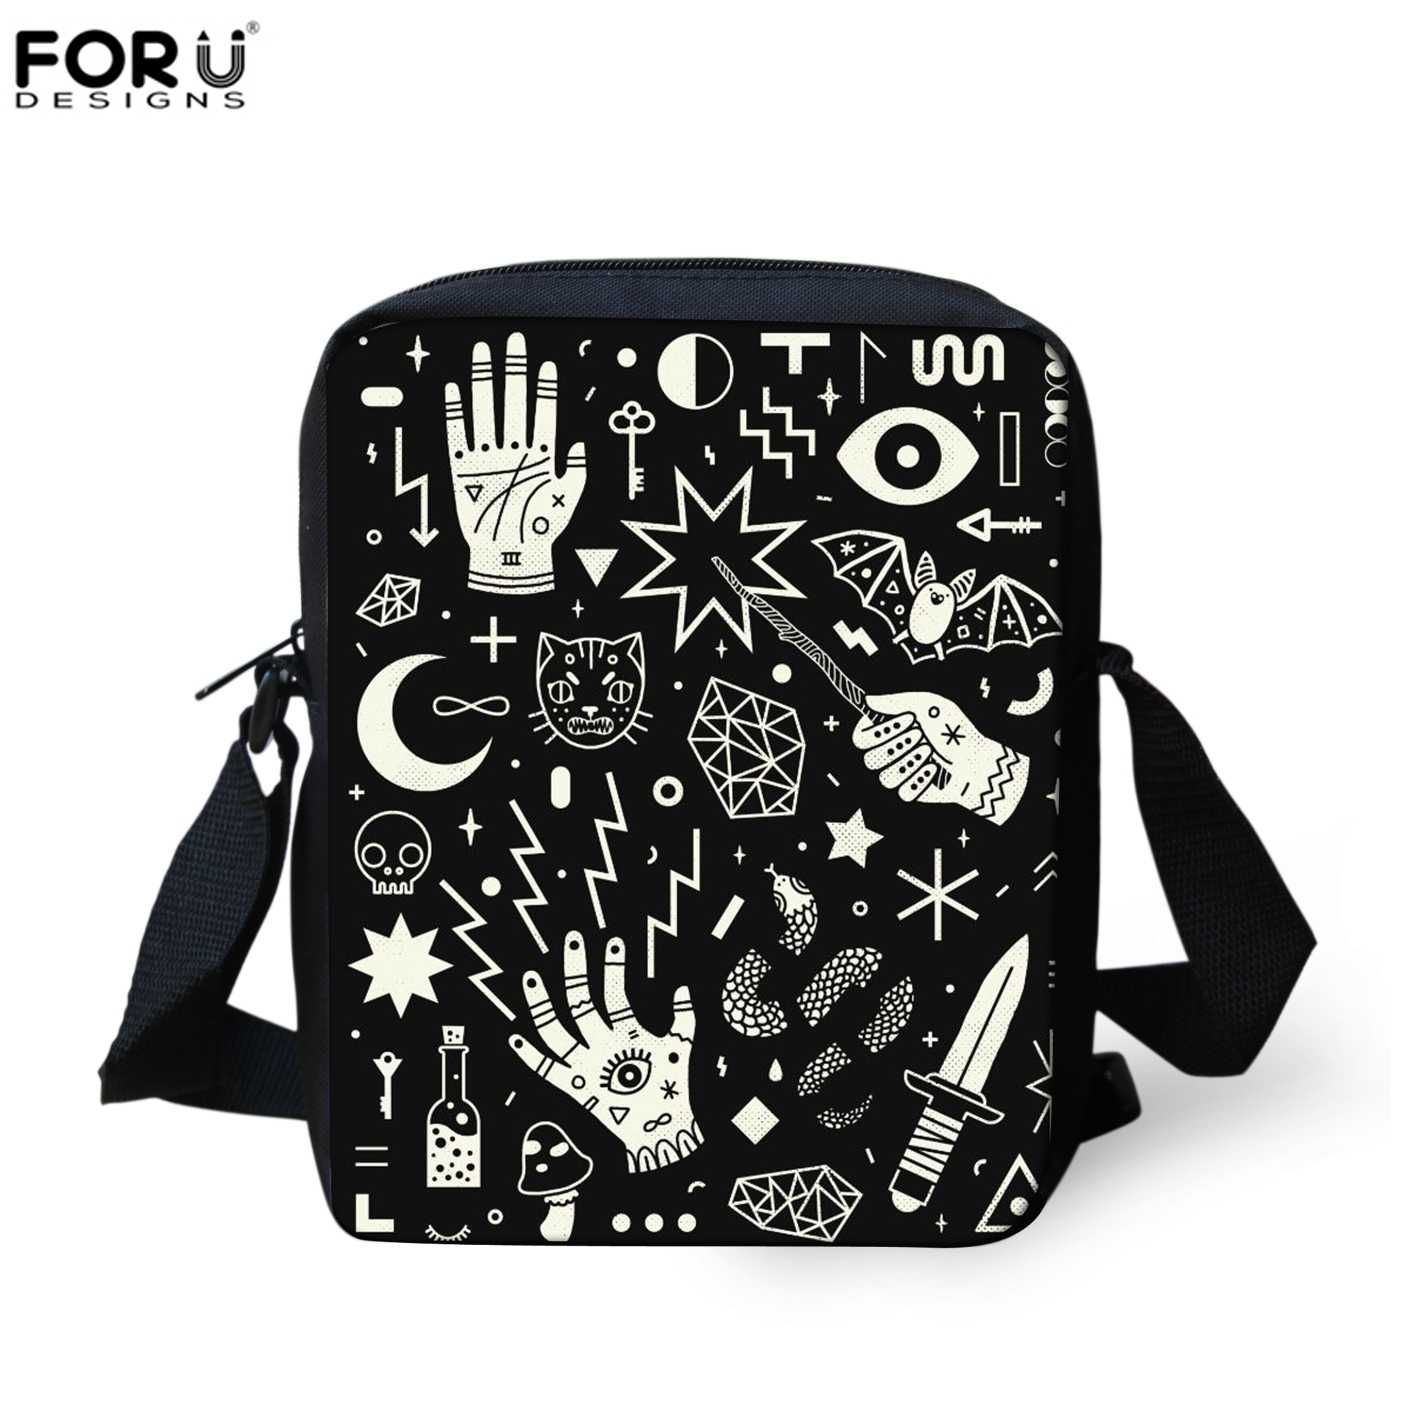 c84572c51c Detail Feedback Questions about FORUDESIGNS SpellBound Witchcraft Ouija  Crafty Pattern Crosssbody Messenger Bags Women Hand Bag Mini Shopping Shoulder  Bag ...